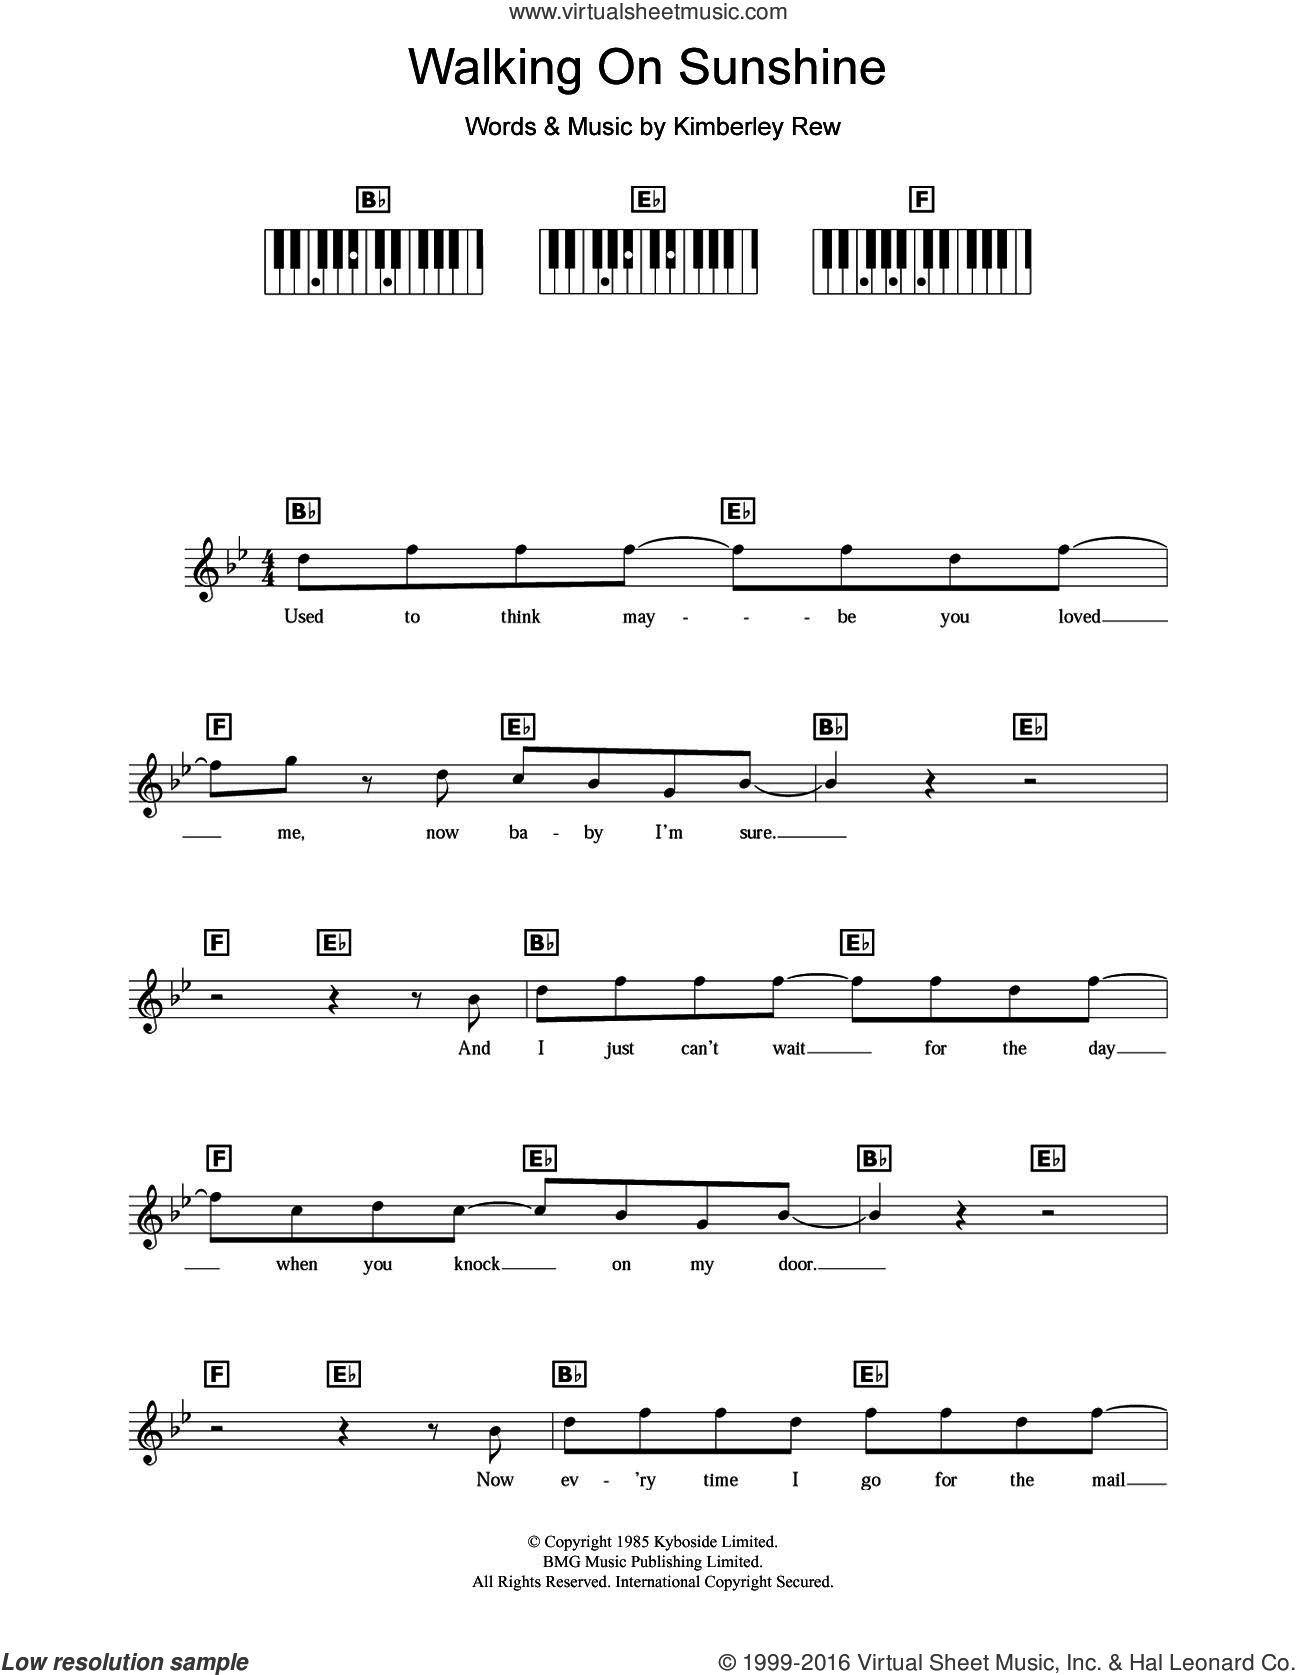 Walking On Sunshine sheet music for piano solo (chords, lyrics, melody) by Kimberley Rew